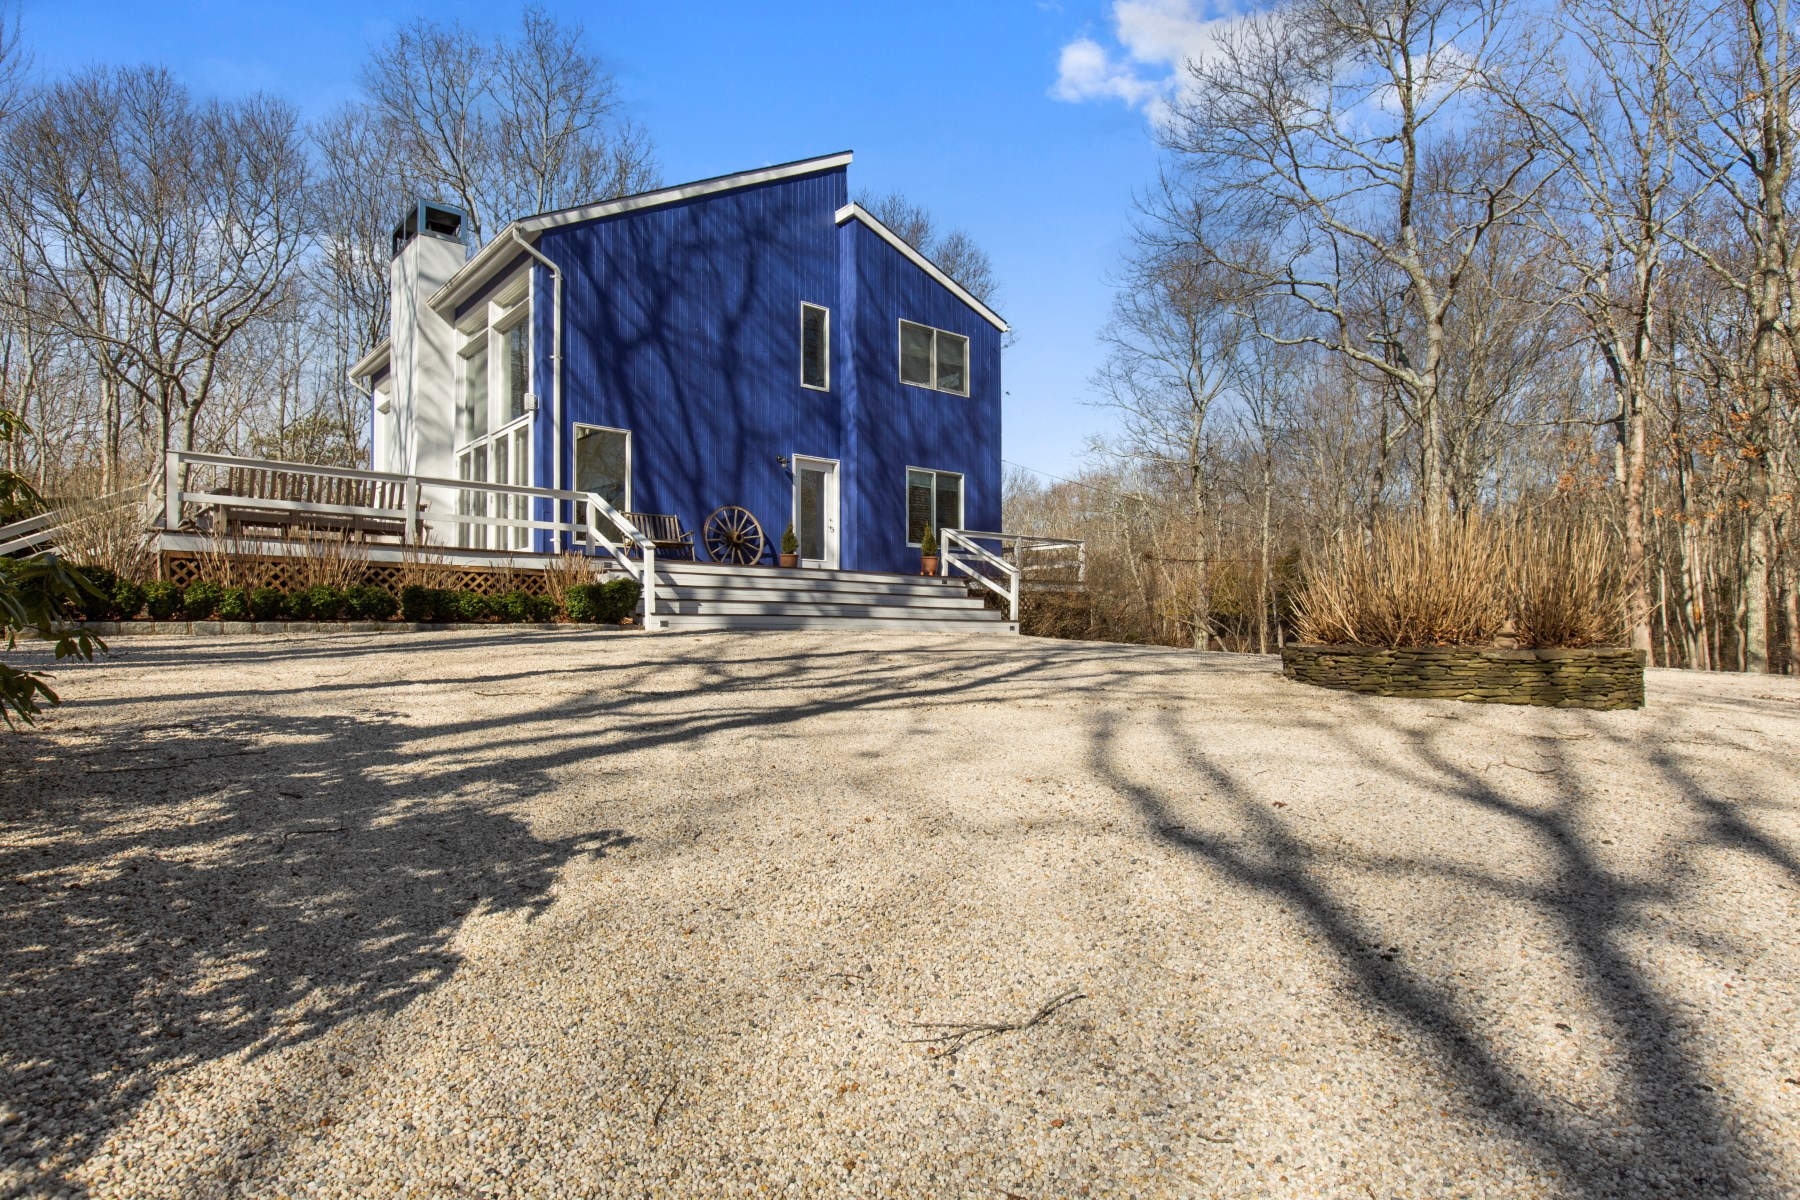 Single Family Home for Rent at Stylish Beach House on Beautiful Water Mill, New York 11976 United States